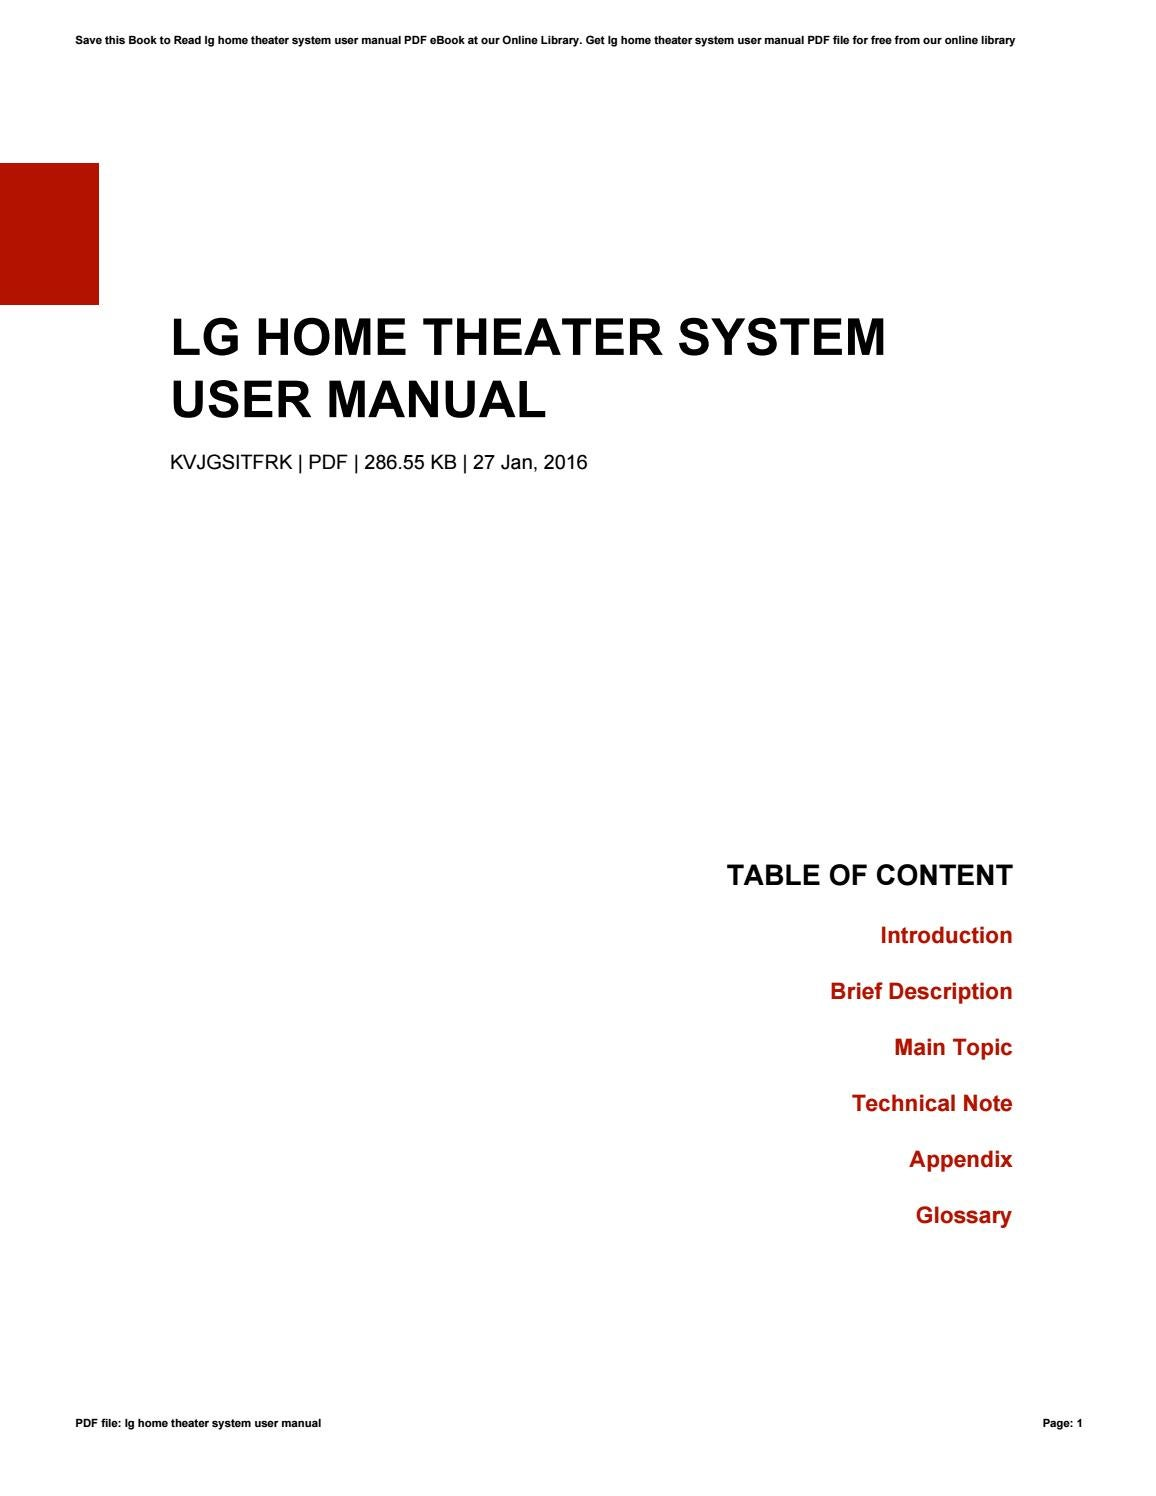 lg home theatre system manual